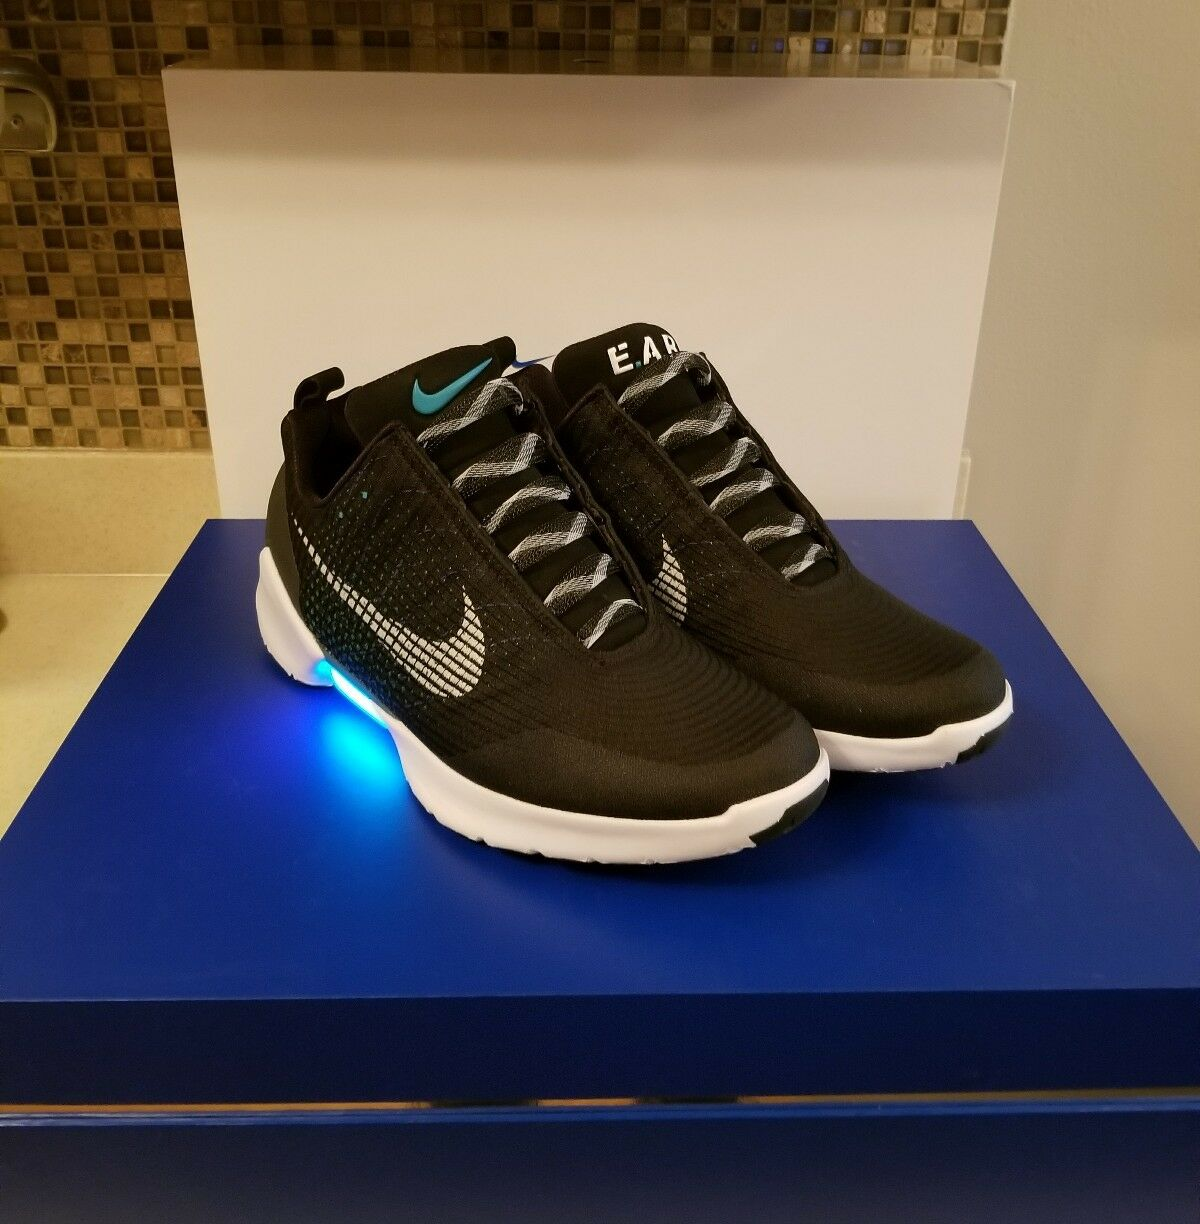 New Nike Hyperadapt 1.0 Self Power Lacing Size 13 Black EARL Special 1st Release